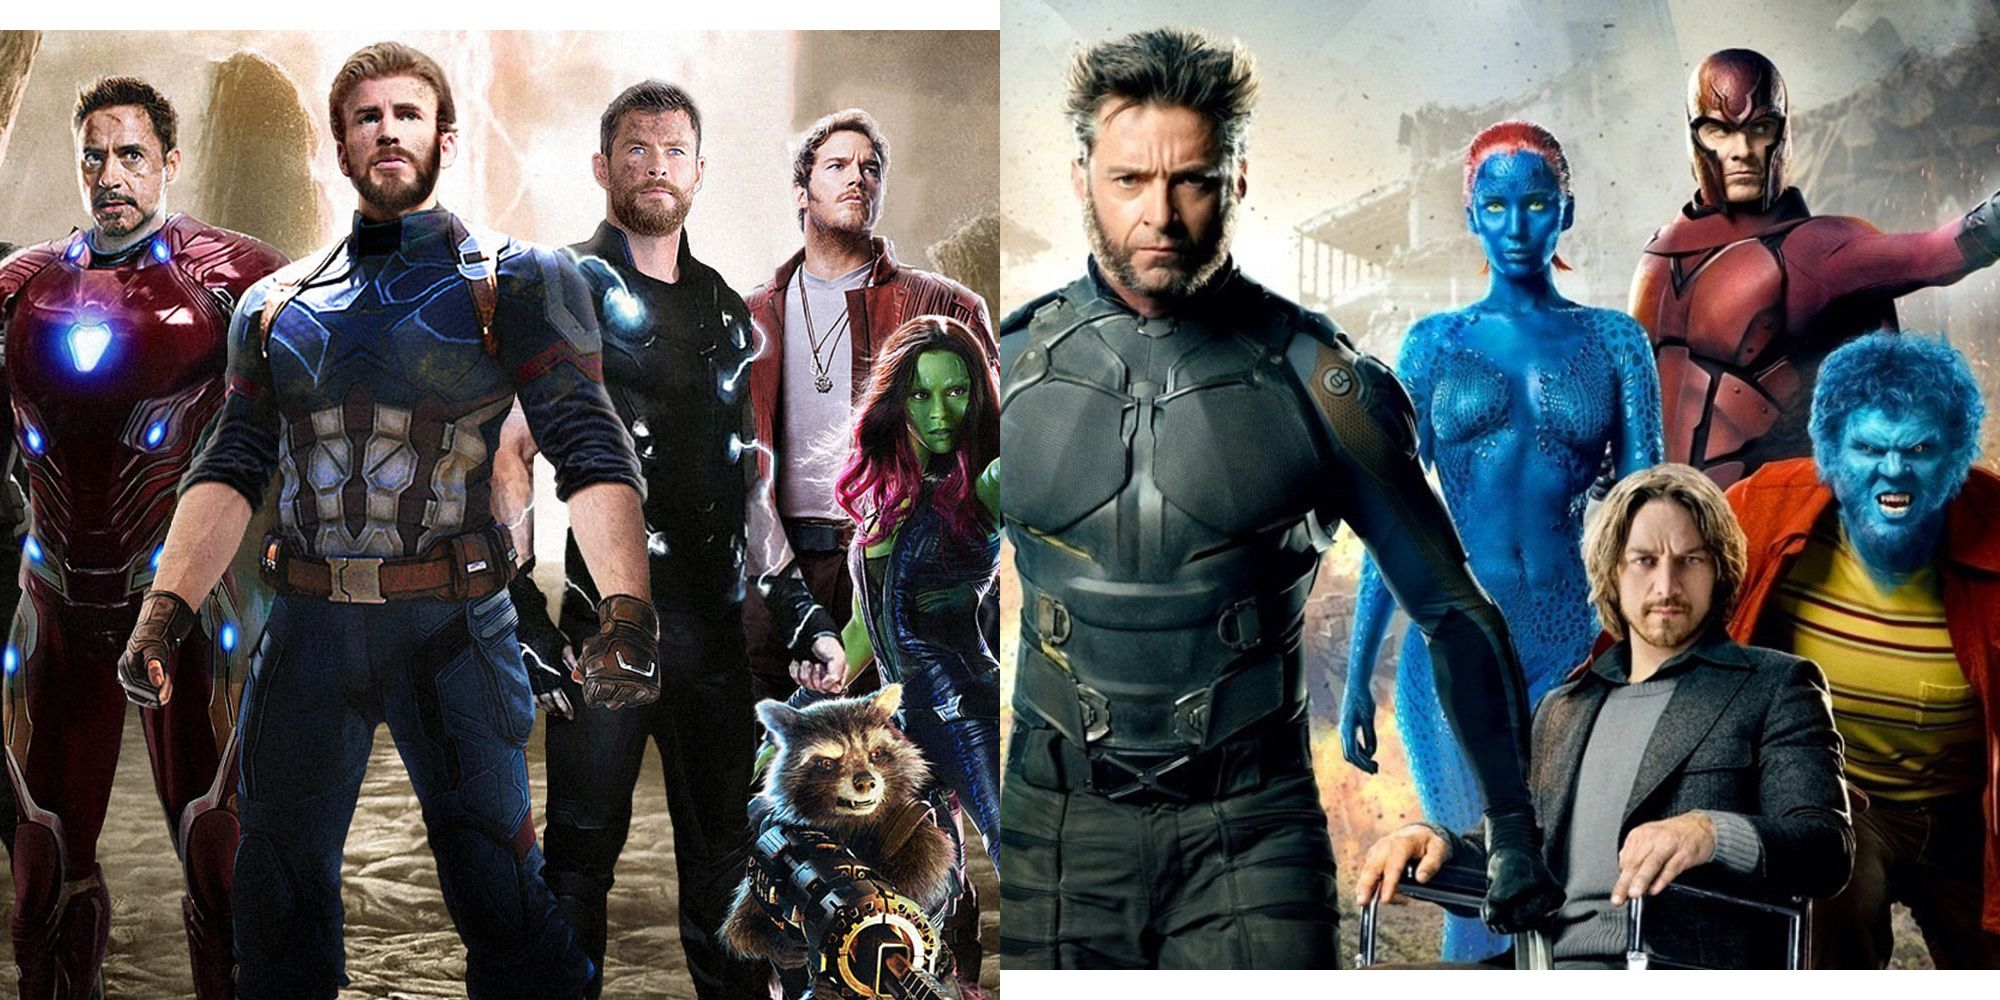 X Men Fantastic 4 Avengers 4 Fan Theory How Avengers 4 Will Introduce X Men Fantastic 4 Into The Marvel Cinematic Universe